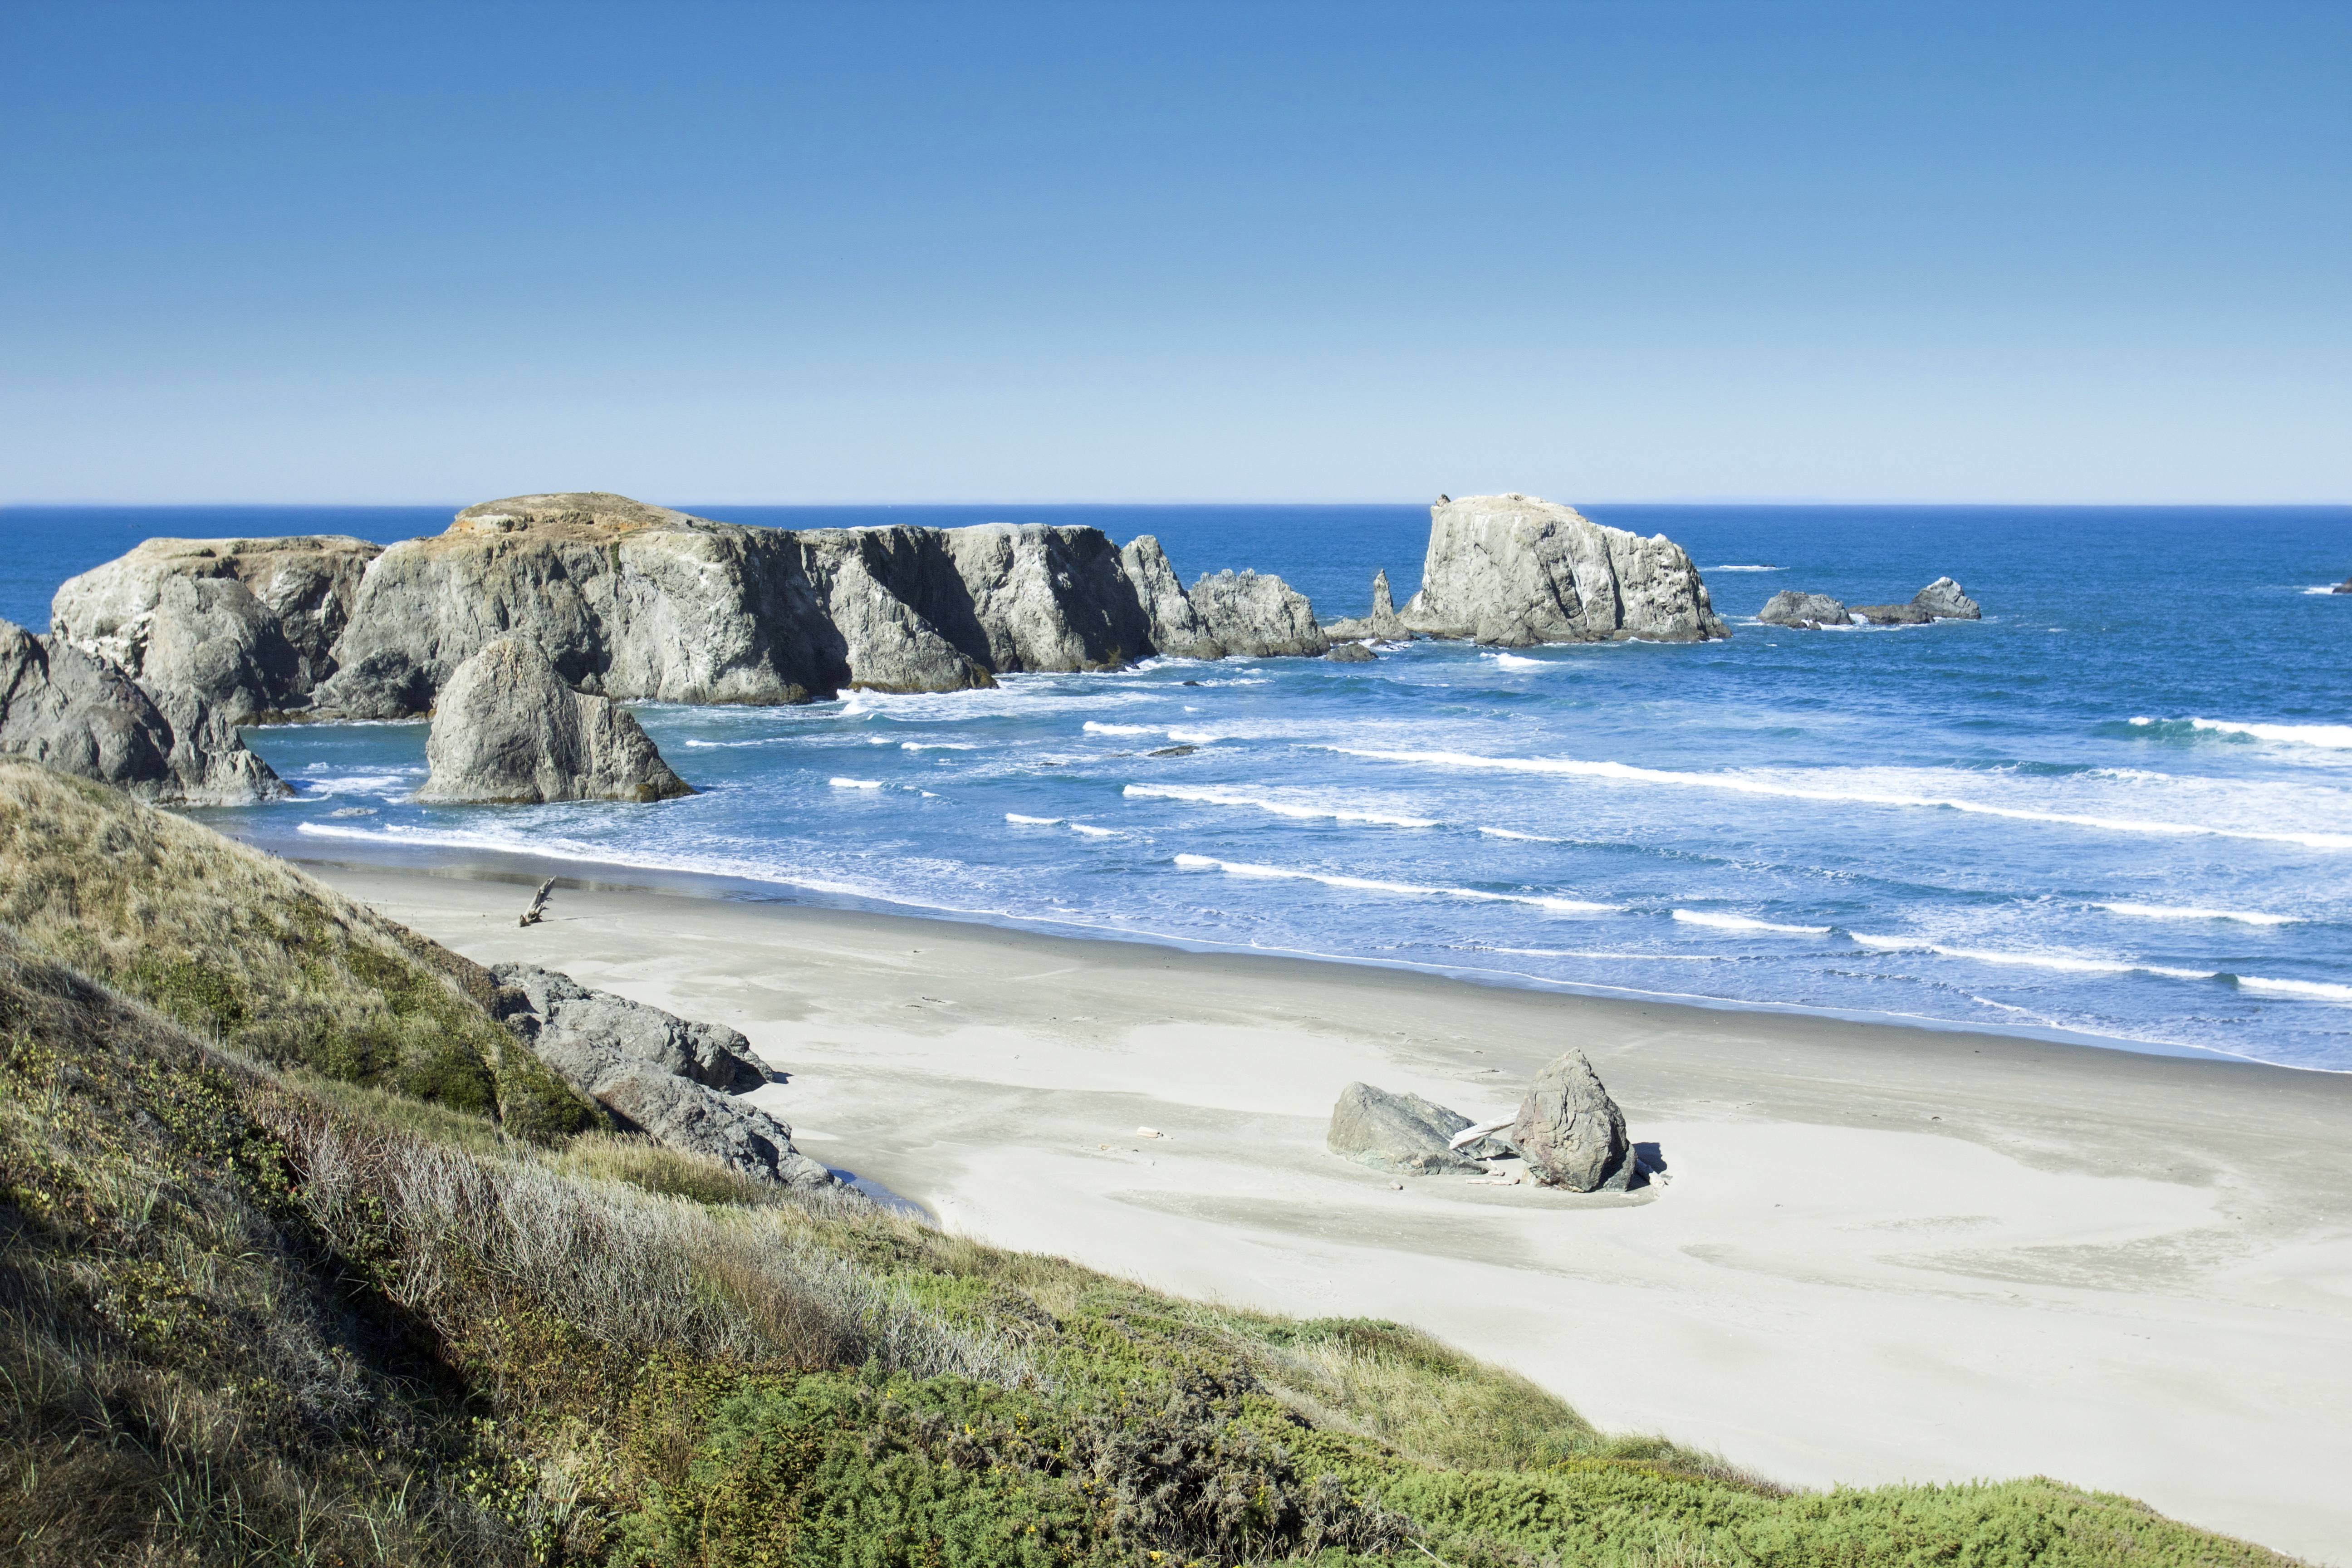 Coquille Point Oregon, Rocks, Sand, Sea, Waves, HQ Photo